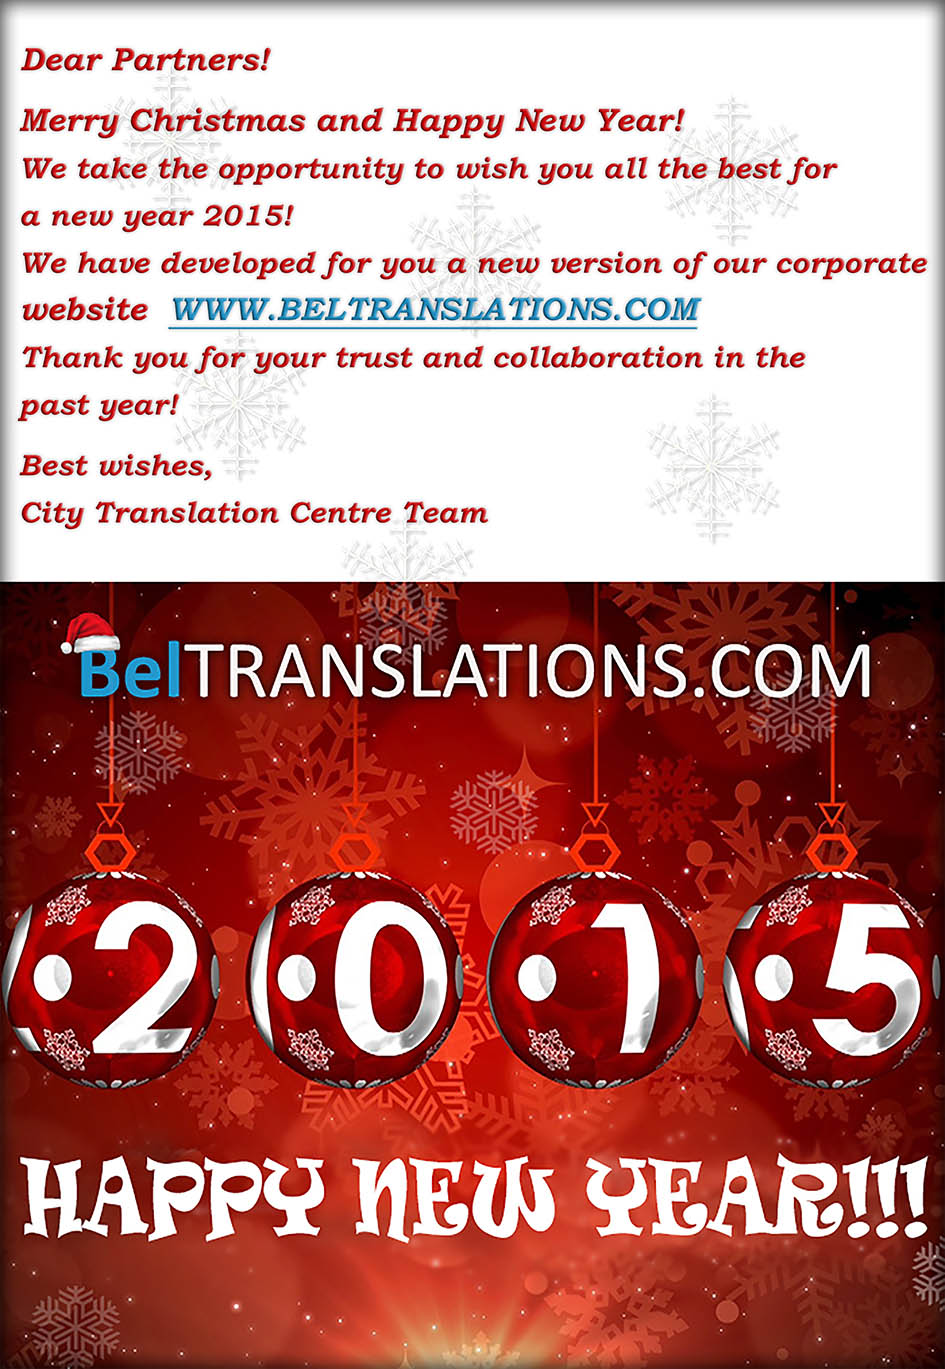 We have developed for you a new version of our corporate website  WWW.BELTRANSLATIONS.COM